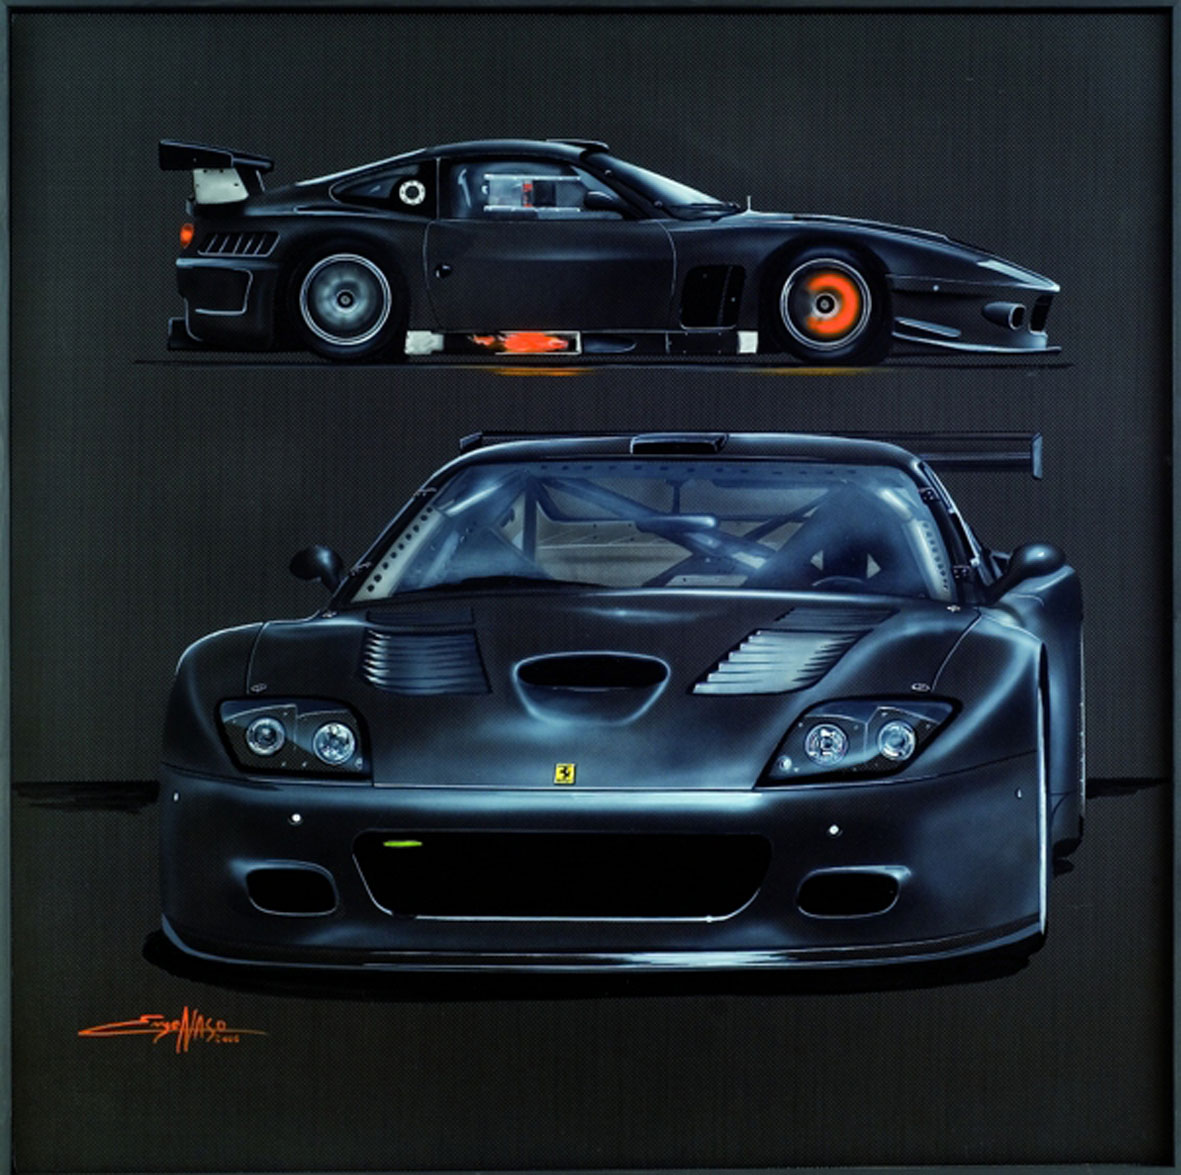 575GTC JMB - 2006 - 100x100 - private collection